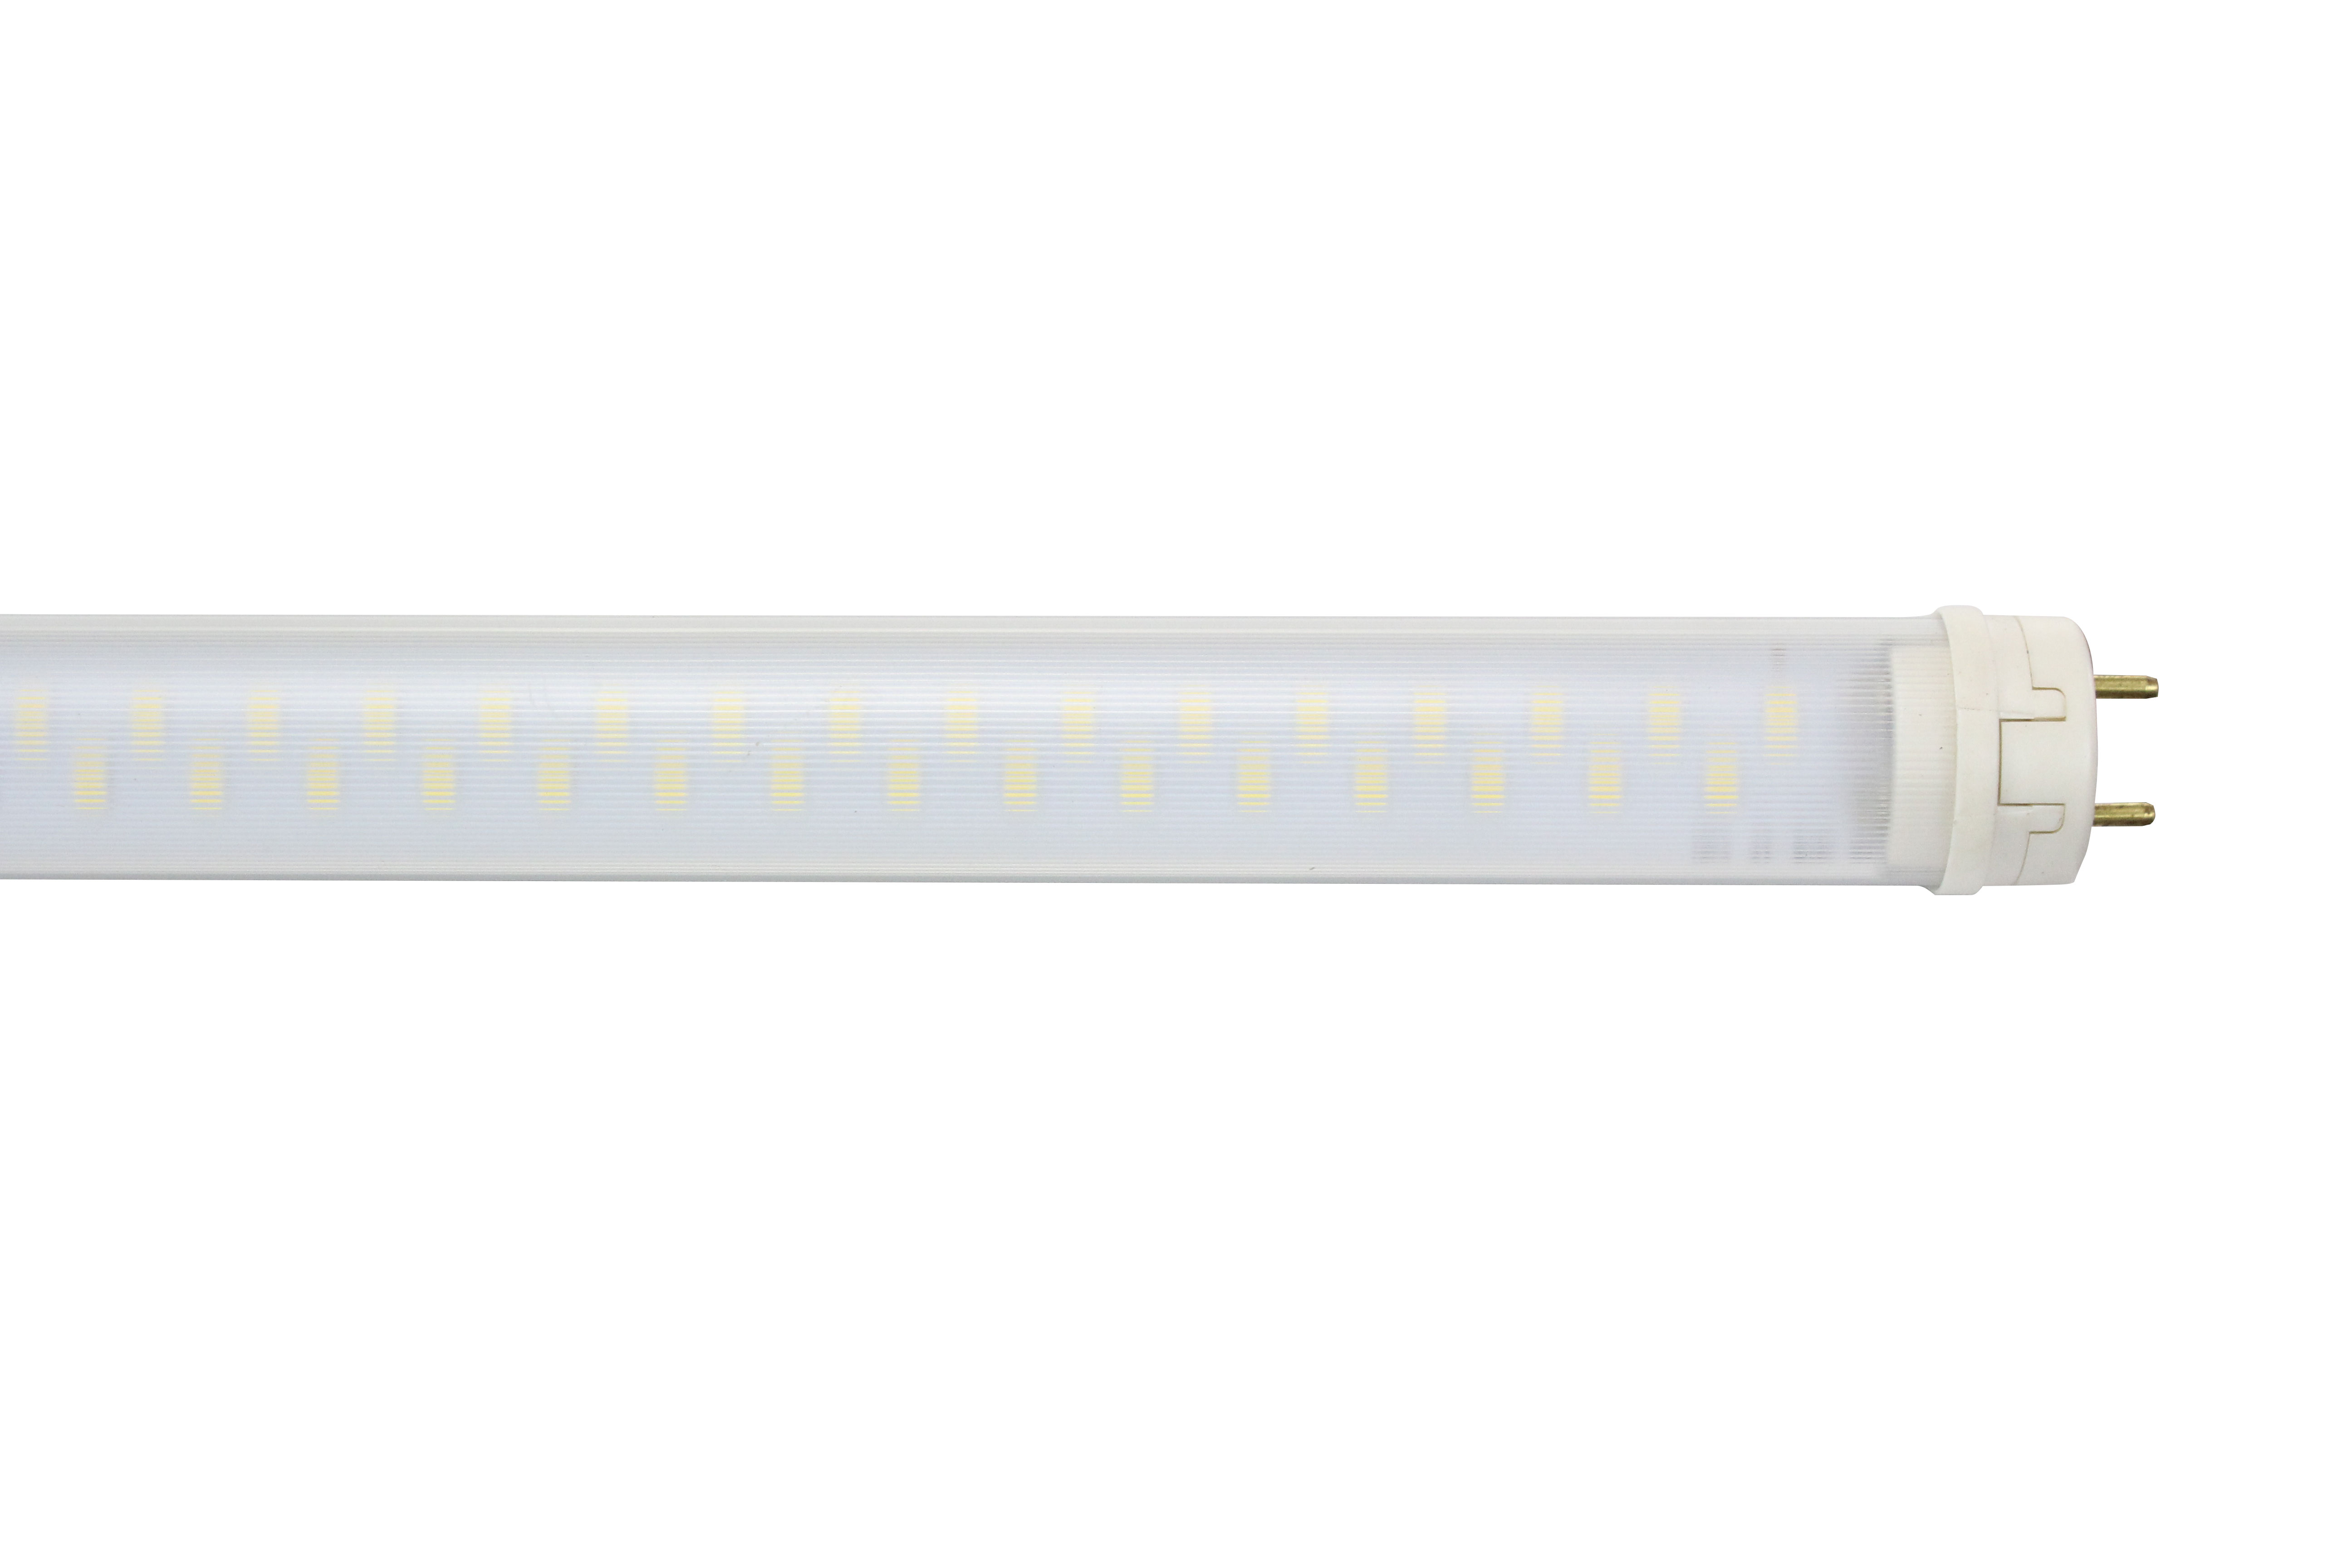 Larson electronics releases a four foot led light bulb to replace 159 watt led replacement lamp for fluorescent light fixturesfour foot t8 led lamp that produces 2000 lumens of light arubaitofo Gallery